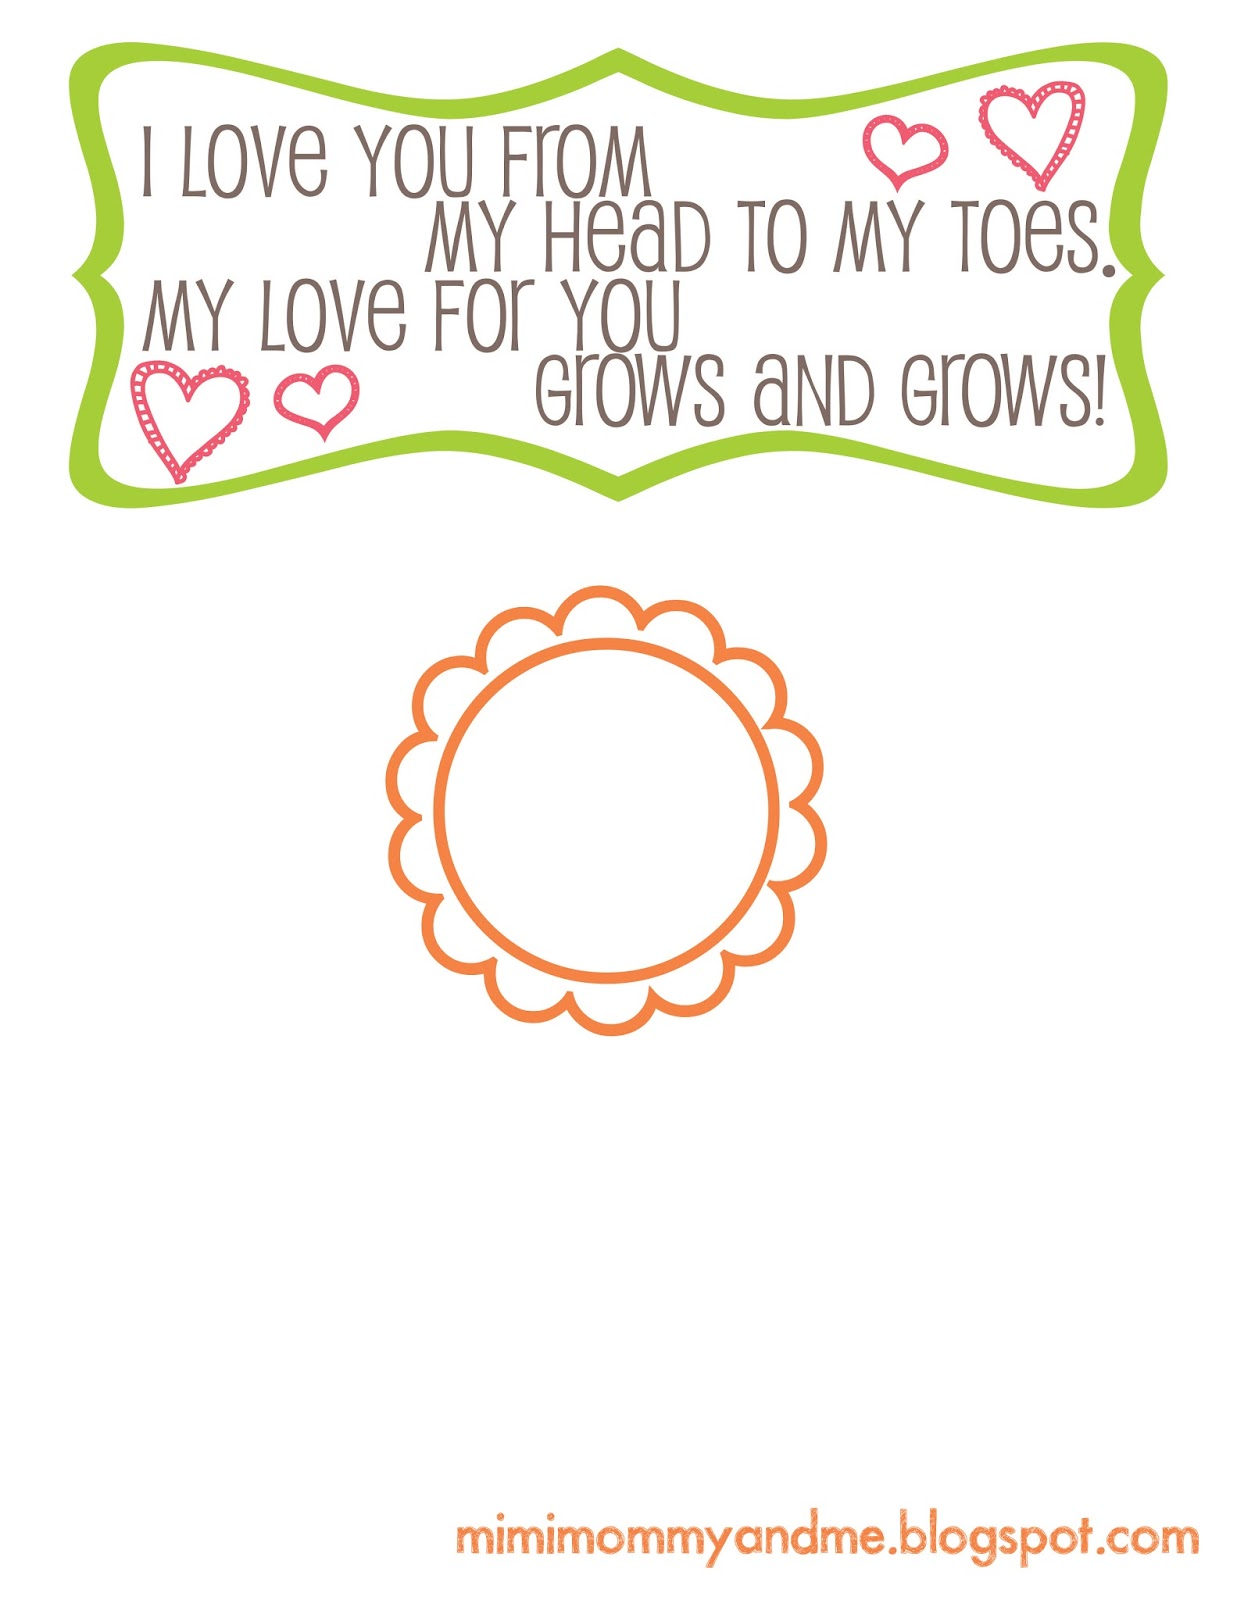 http://mimimommyandme.blogspot.com/2014/05/mothers-day-free-printable.html